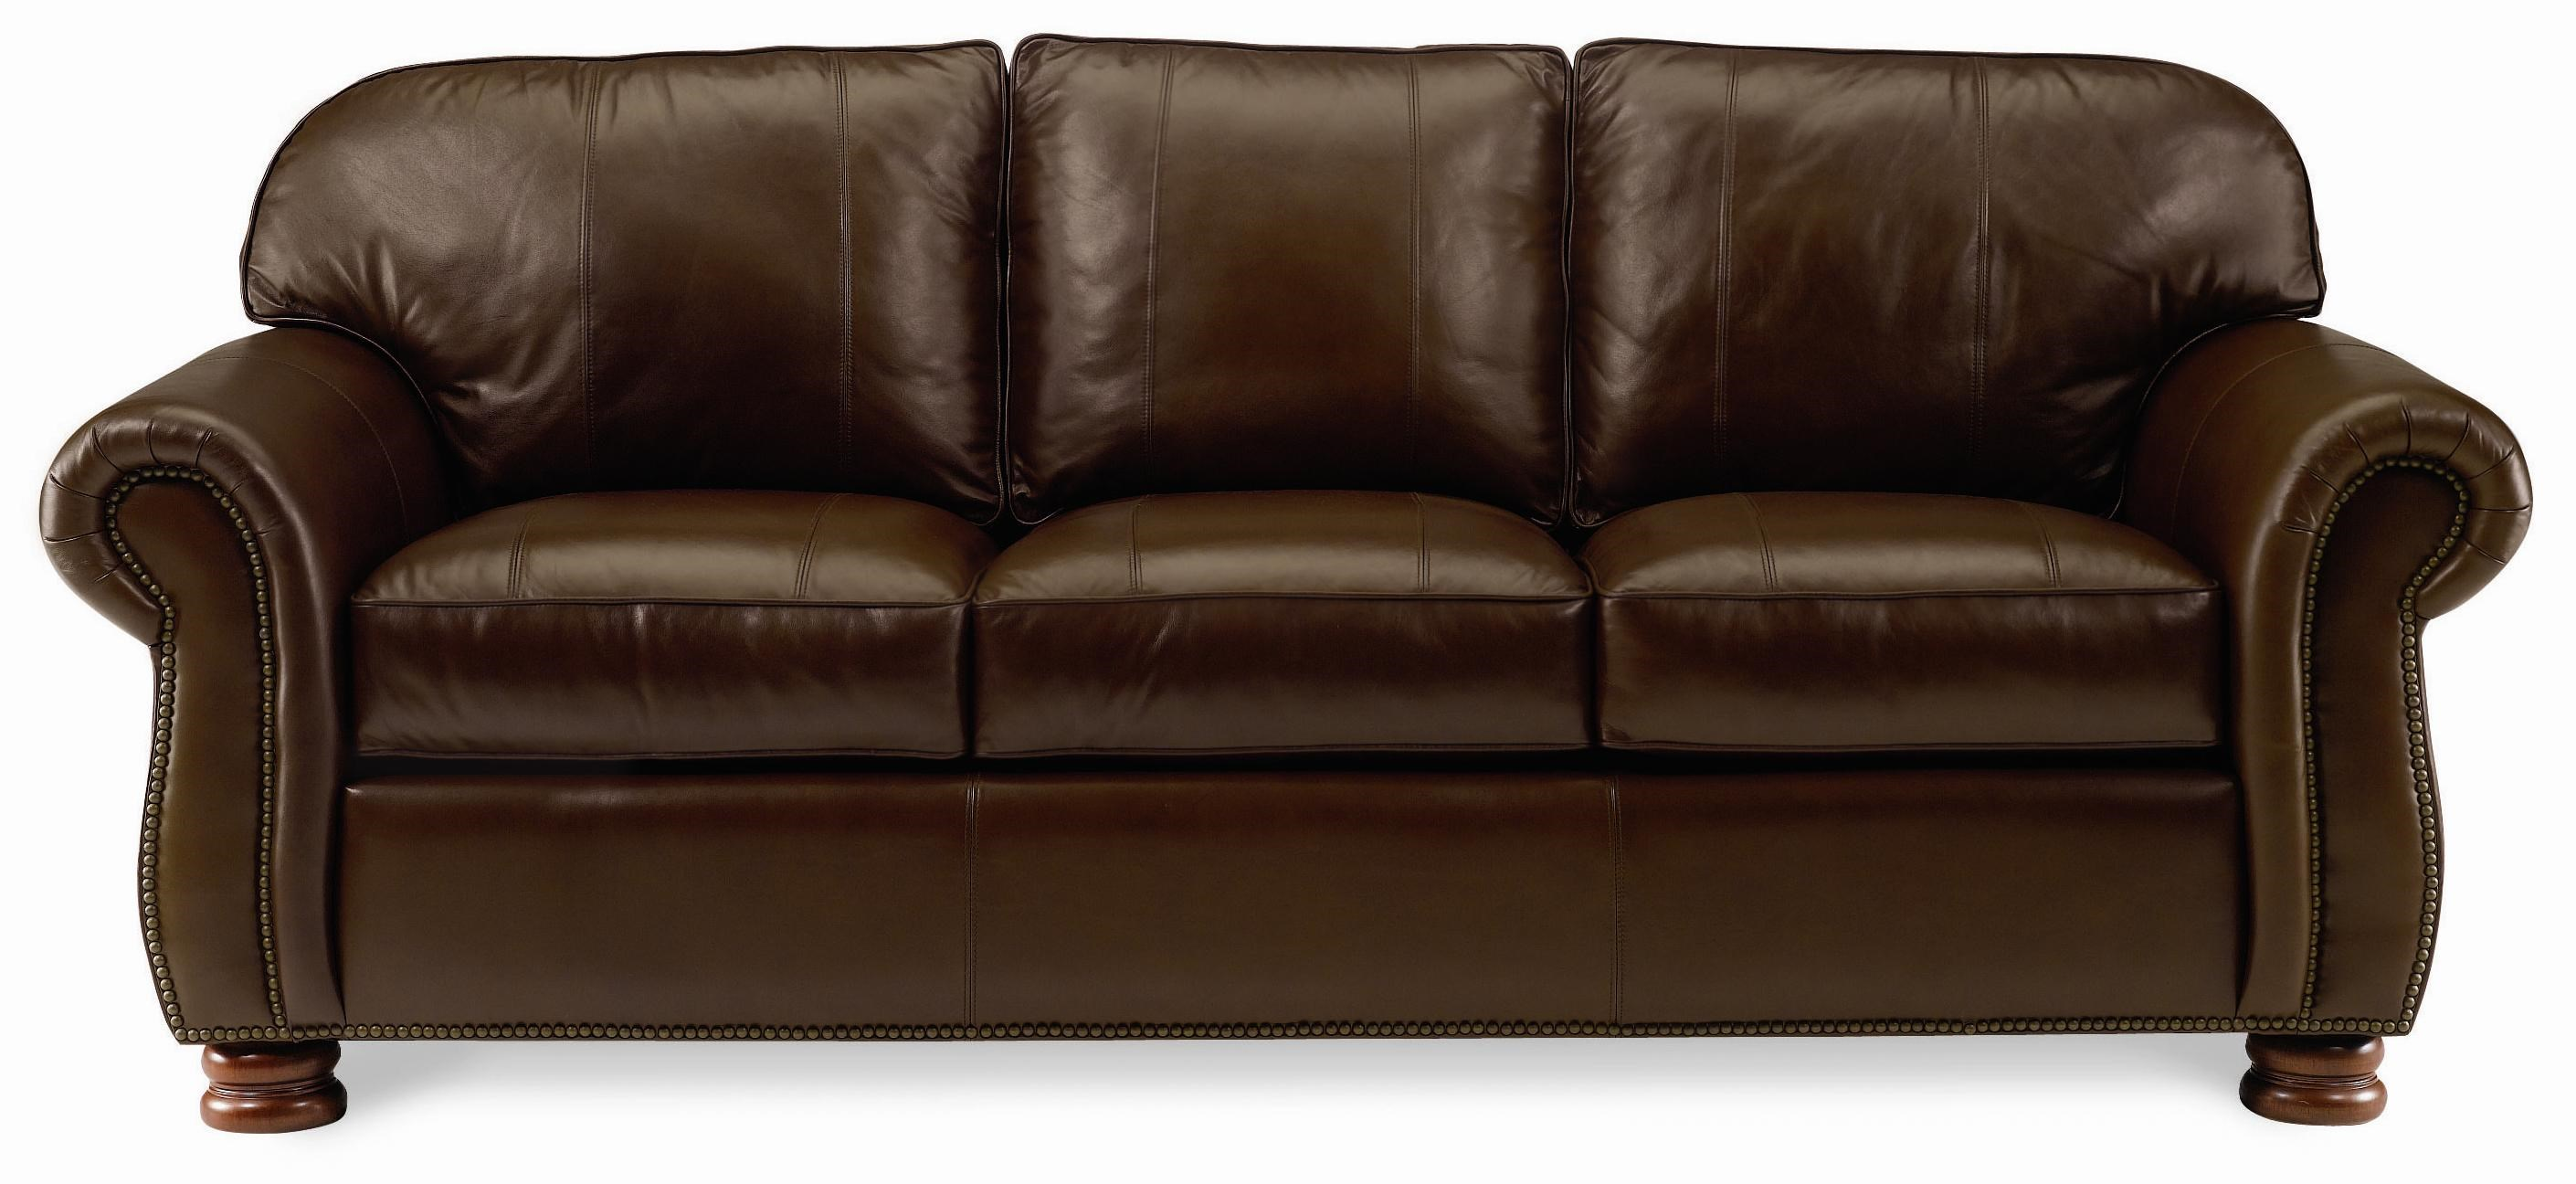 Superieur Thomasville® Leather Choices   BenjaminLeather Select Sofa ...